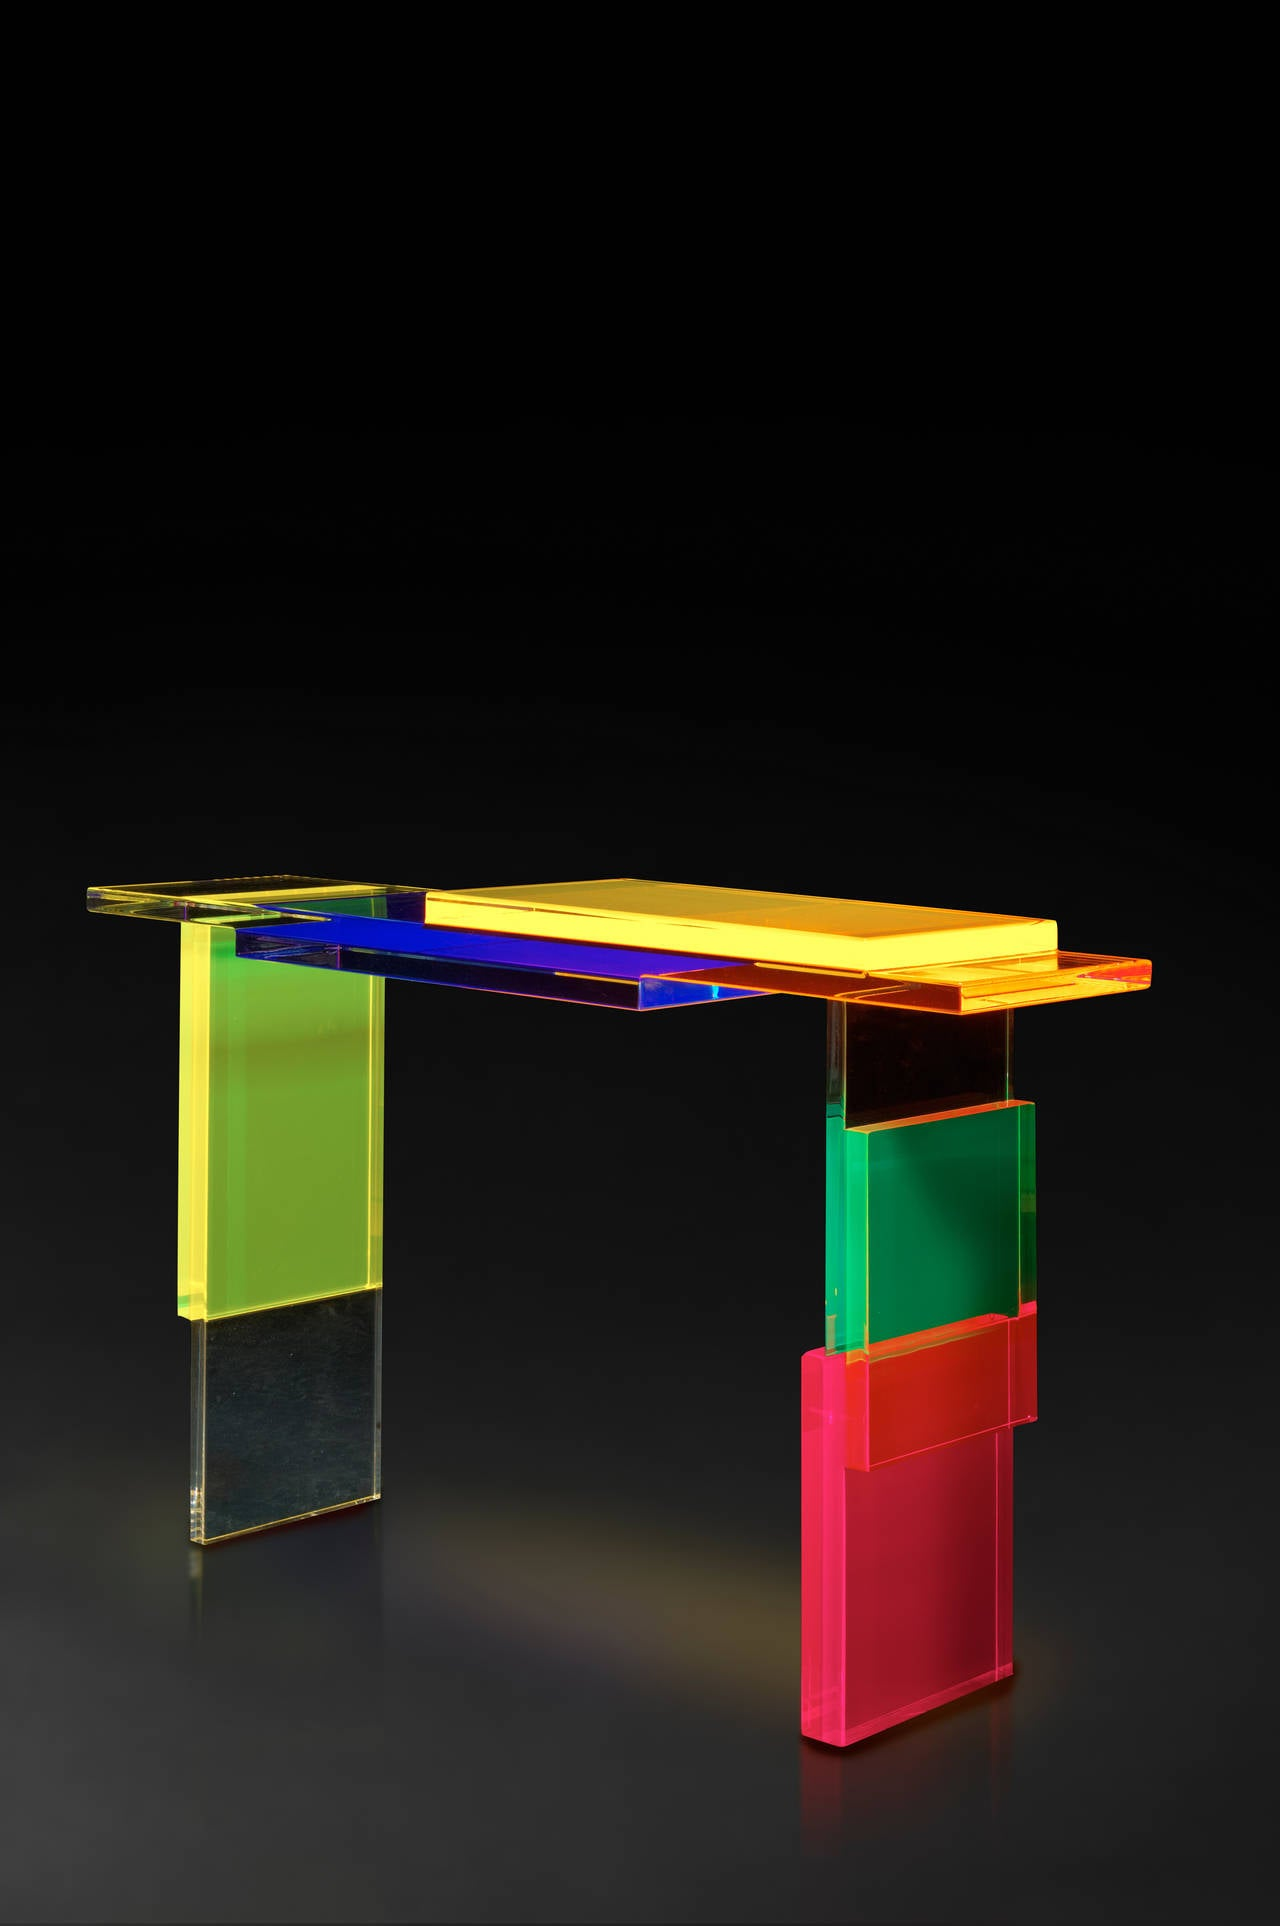 Colorful Destructured Console Table by Charly Bounan 2